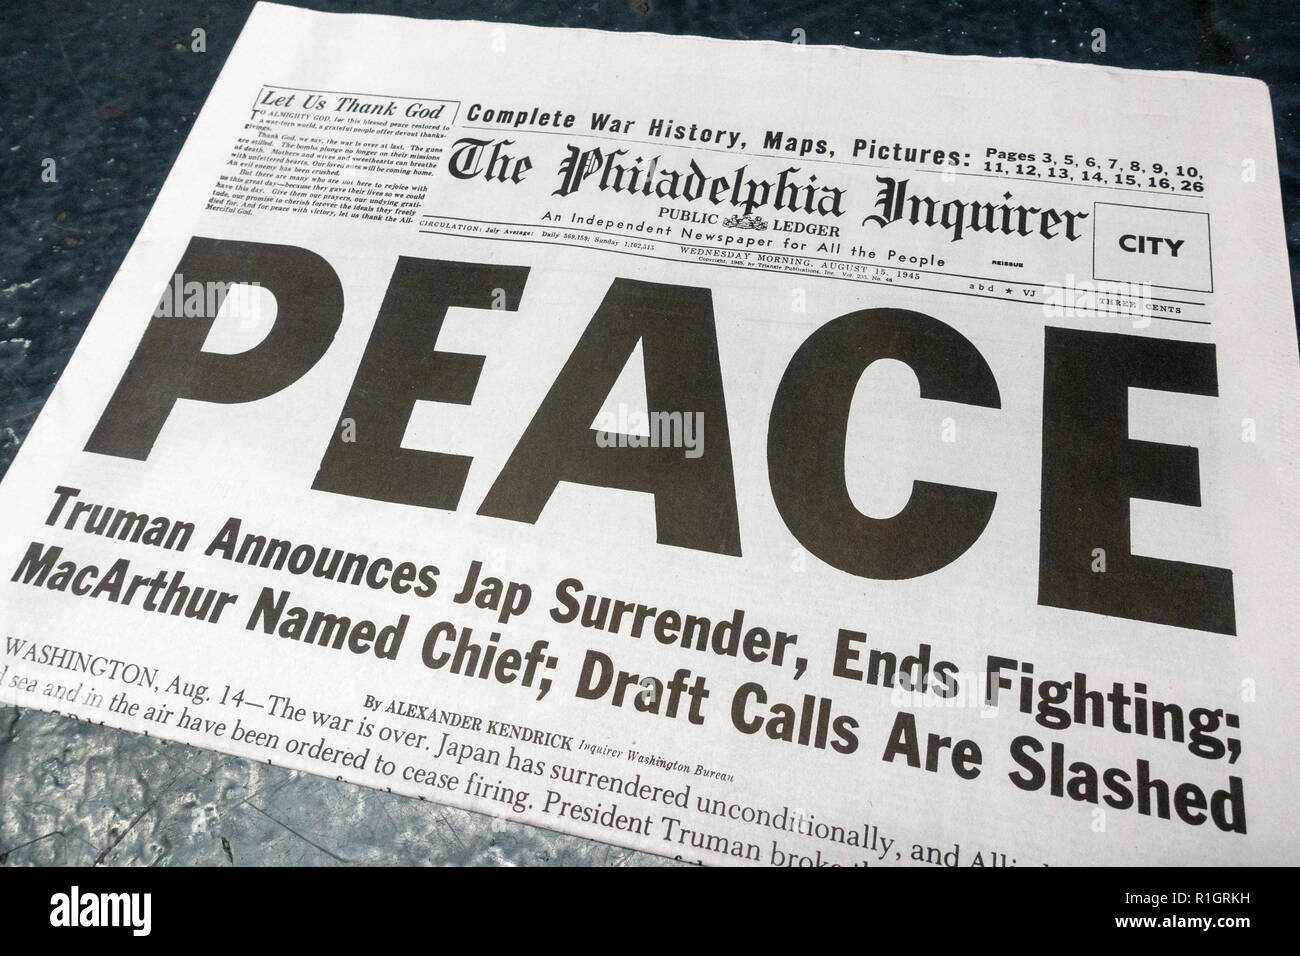 Front page headline on The Philadelphia Inquirer (replica), 15th August 1945, after the Japanese surrender at the end of the Second World War. - Stock Image